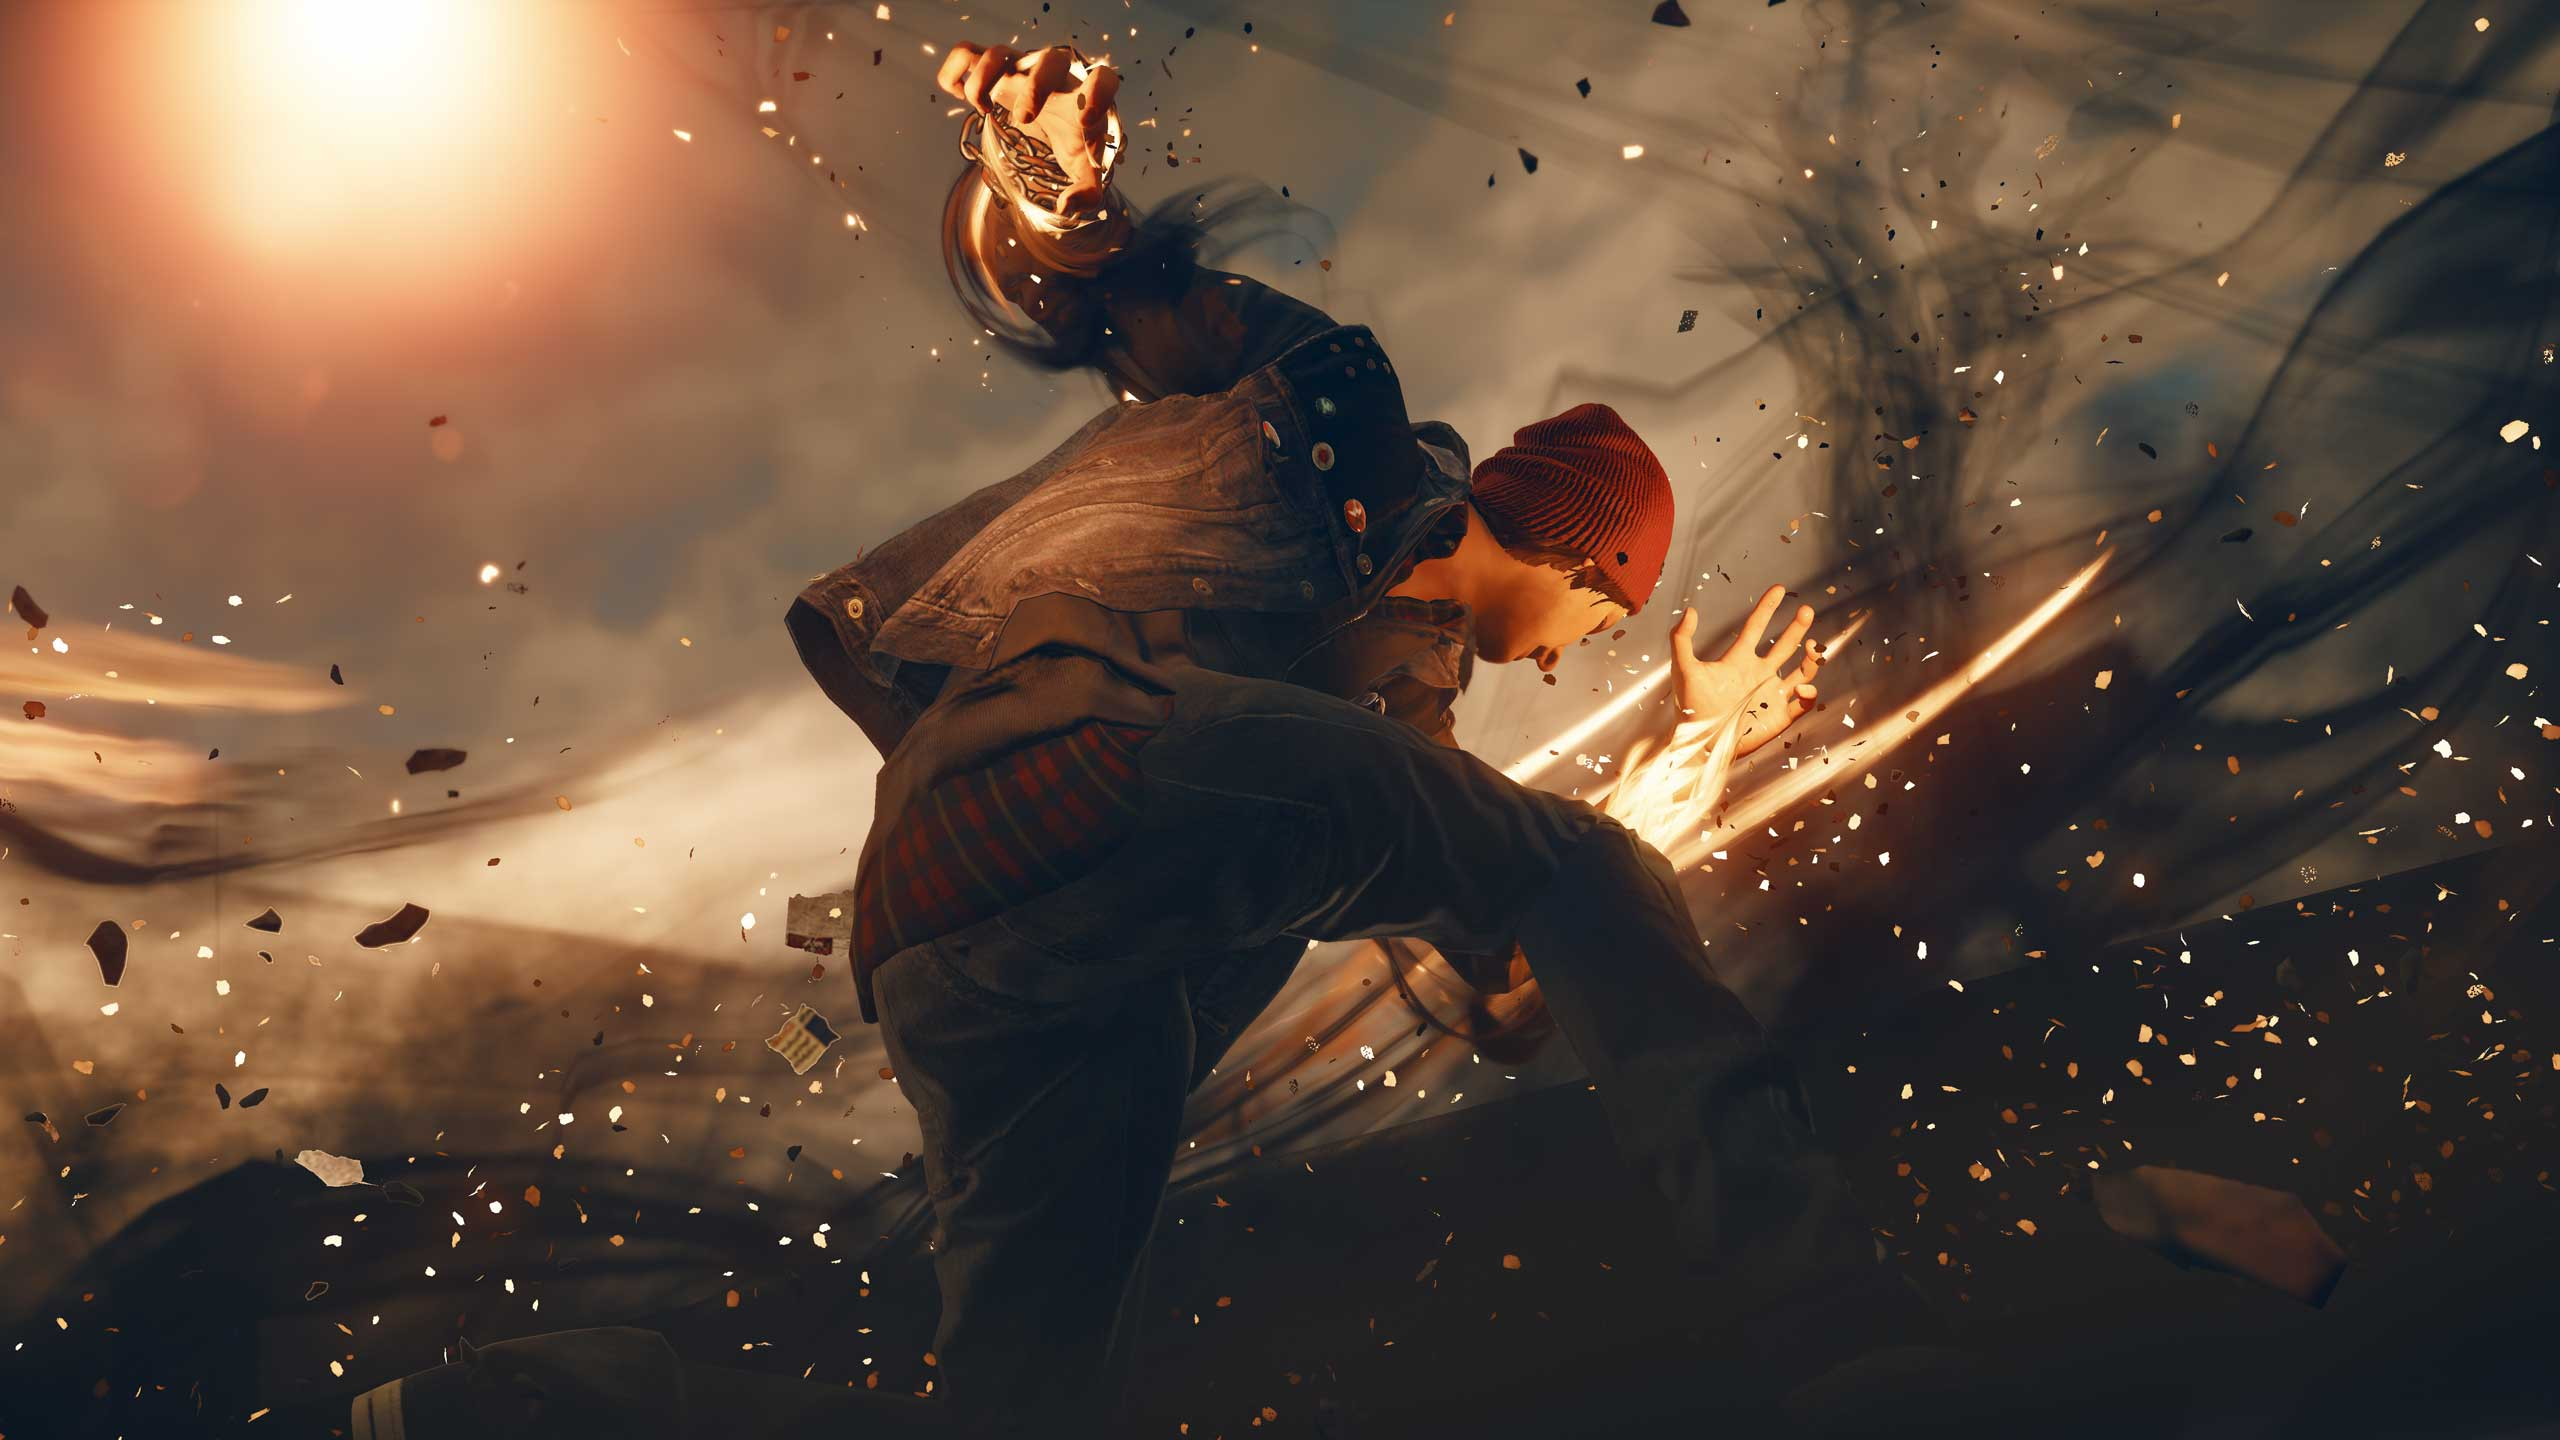 <strong>Infamous Second Son</strong>                                                                          Sucker Punch's freeform Seattle-based superhero adventure models all sorts of minutia, from the intricate wrinkling of an aged character's face to the way eyelids stick, slightly, before separating when characters blink.